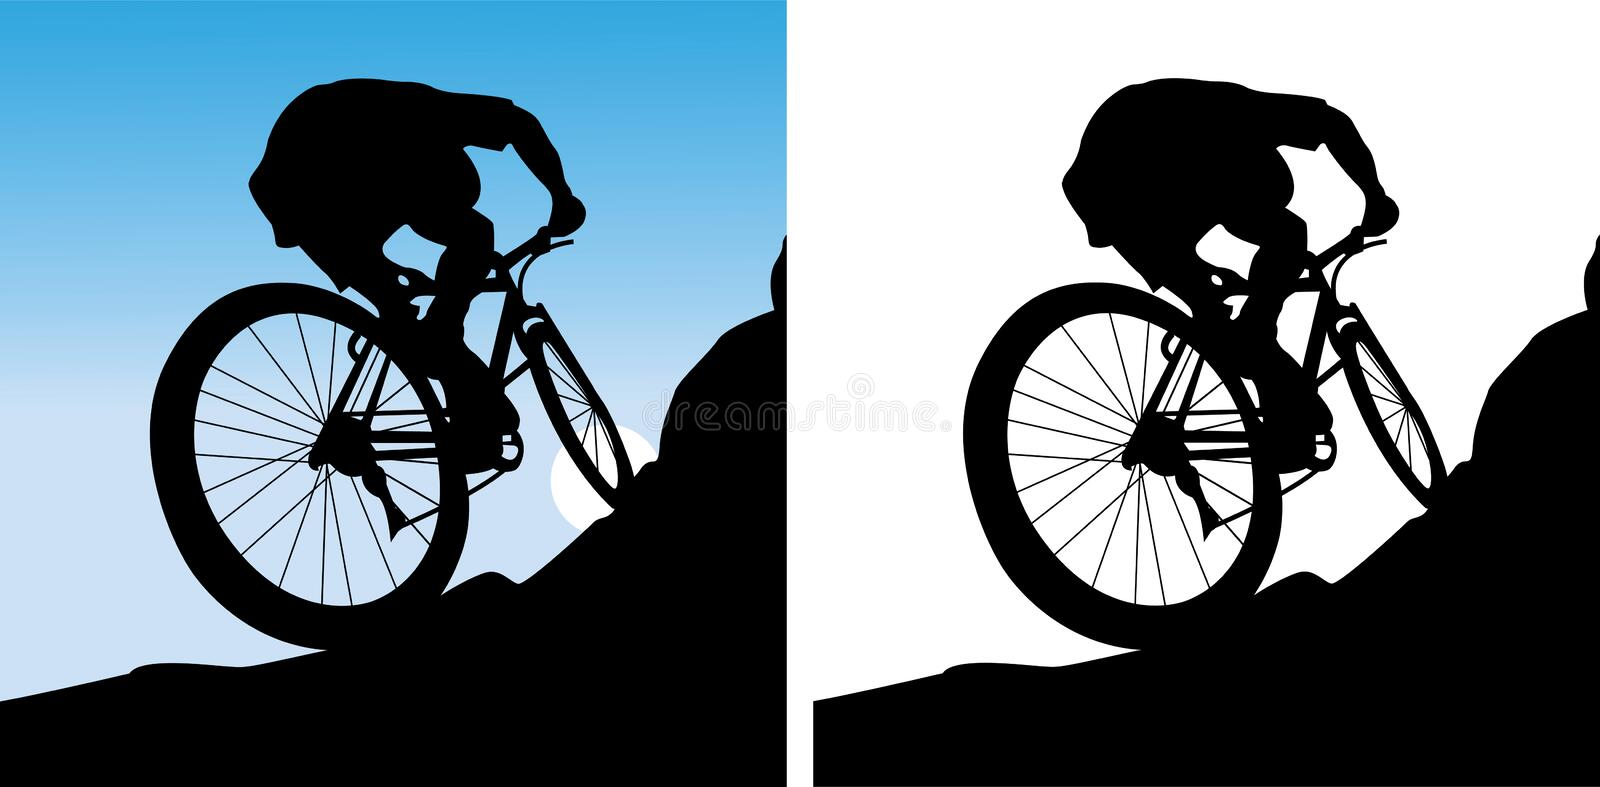 The sportsman on a bicycle vector illustration